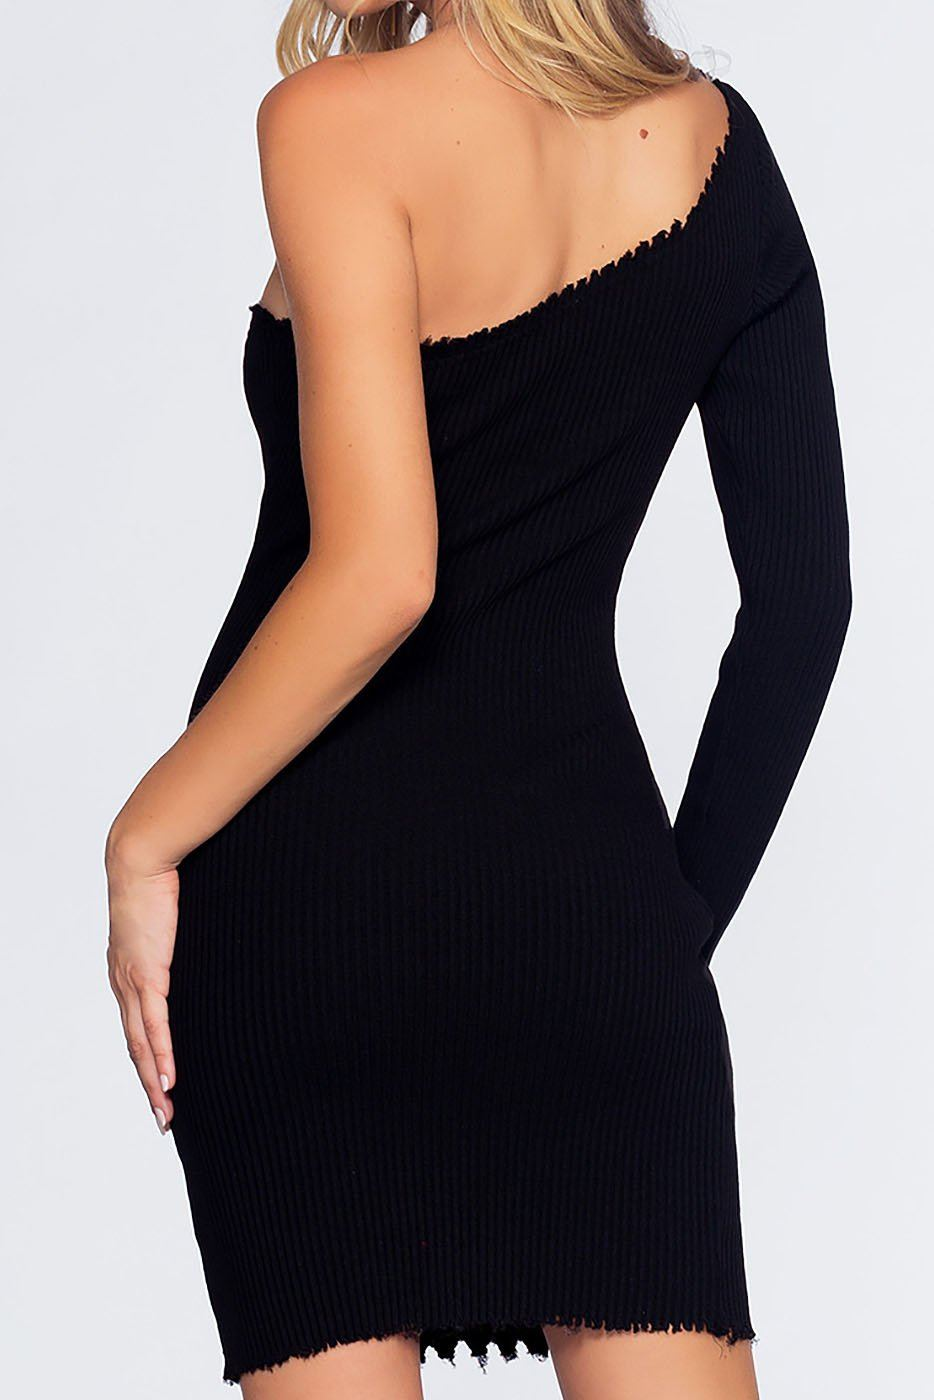 Rib Me Right Dress - Black | Better Be